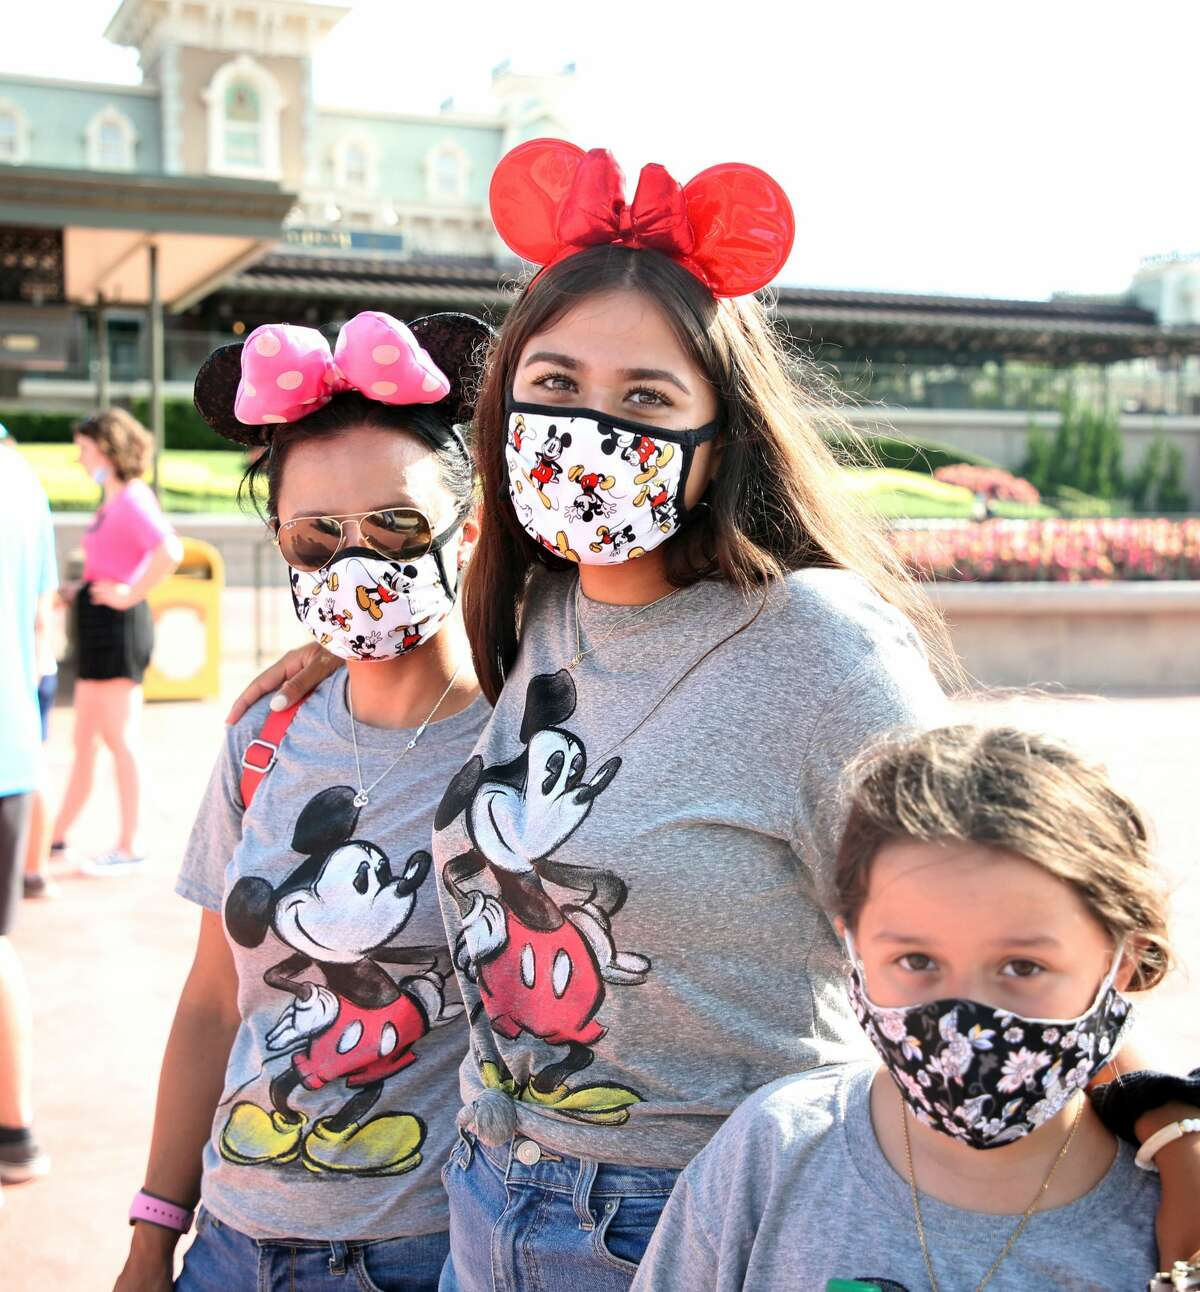 If your wee ones miss visiting their favorite zoo animals in the California sunshine, stock up on a variety of kid sized masks from San Diego Zoo. Choose from tiger, koala, cheetah or lion masks and more, all the while supporting zoo activities. Miss visiting Disneyland Resort? Visit the online Disney store and bring a little of the magic home with washable masks featuring your family's favorite characters from Toy Story, Star Wars and Marvel. Or surprise your own little Disney Princess with a set of masks featuring her heroes. If your idea of fun is found along the beach, Everyday California based in La Jolla is for you. Adult facial coverings range from surfboard designs on masks or neck gaiters with sunny patterns or surfing bears.